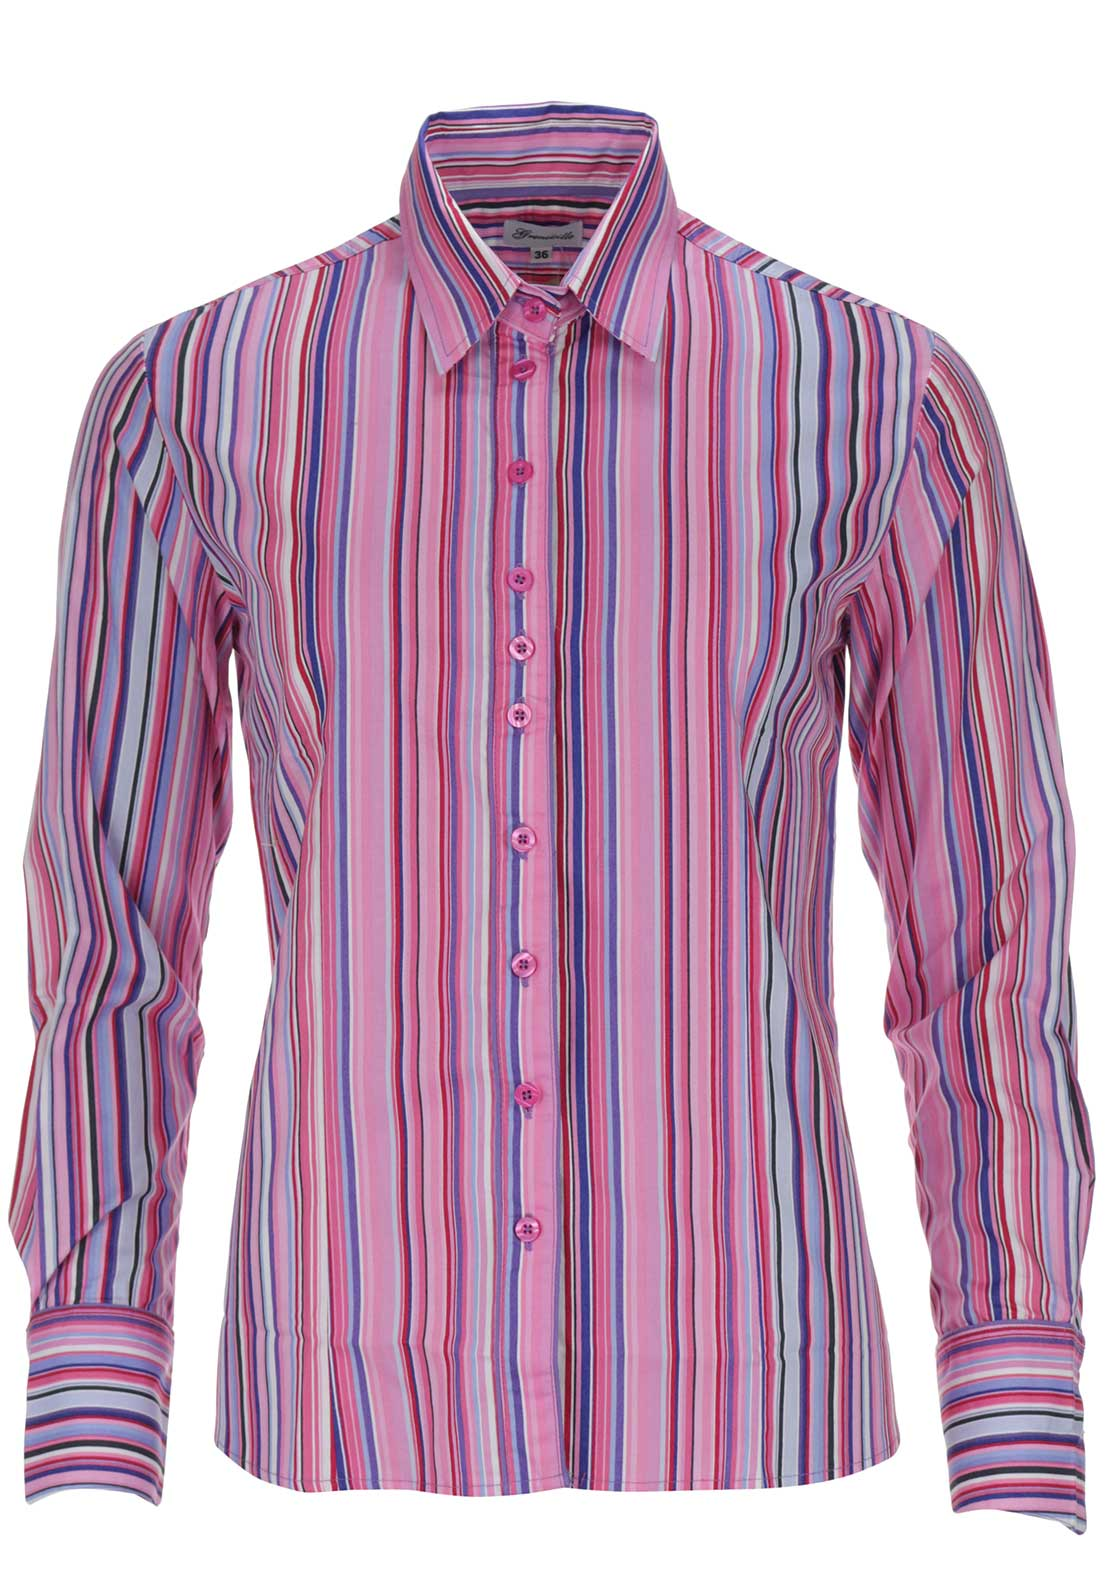 Grenouille Striped Long Sleeve Blouse, Pink Multi